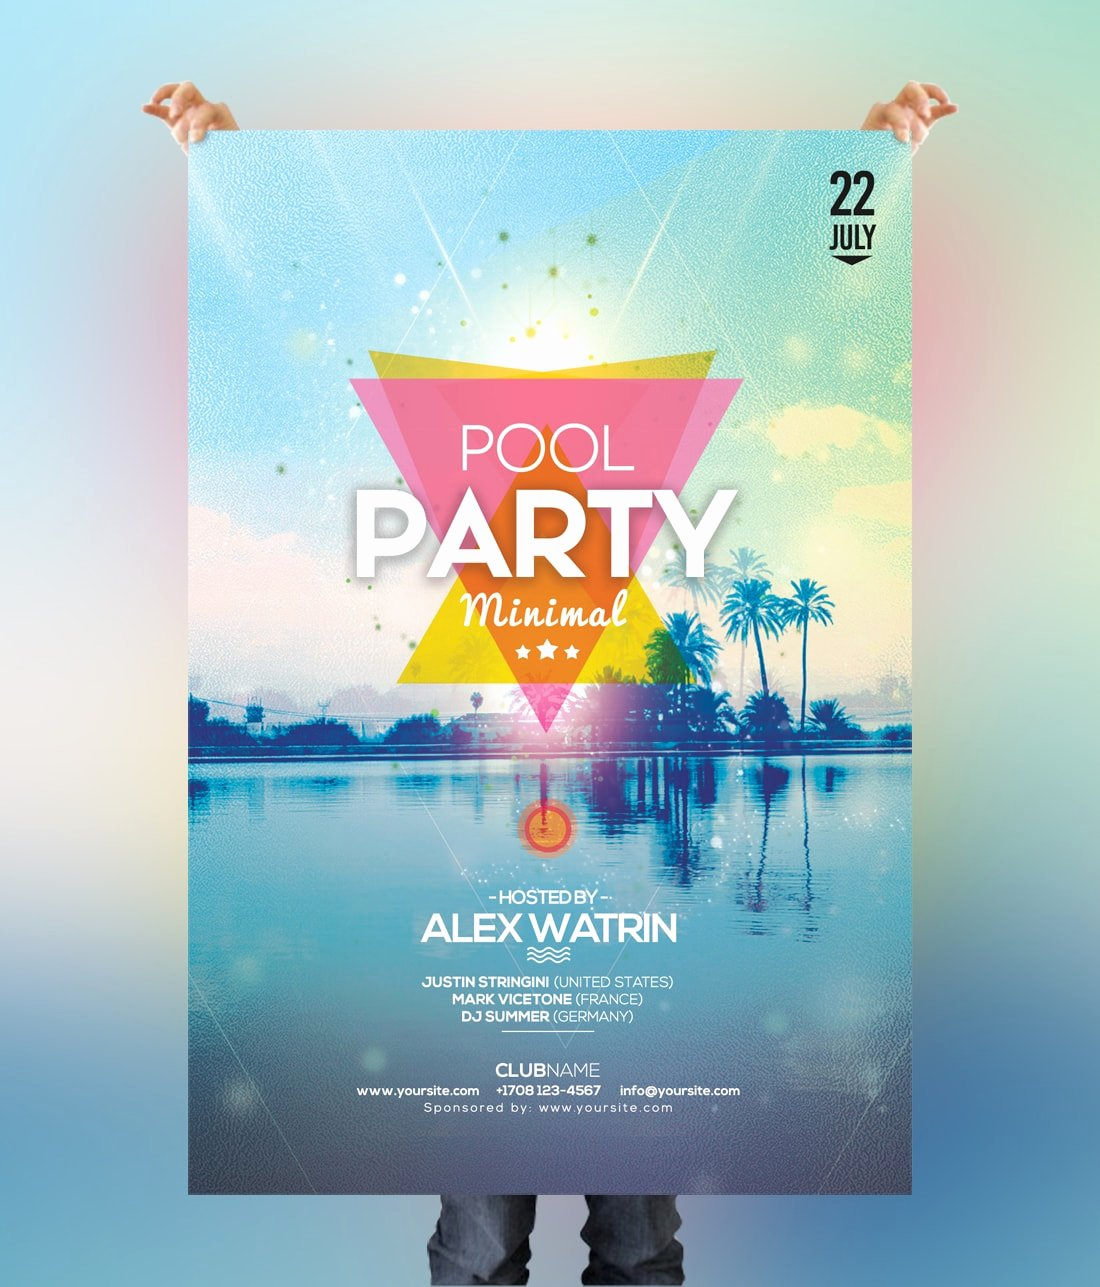 Pool Party Flyer Templates Free Lovely Pool Party Free Summer Psd Flyer Template Psdflyer